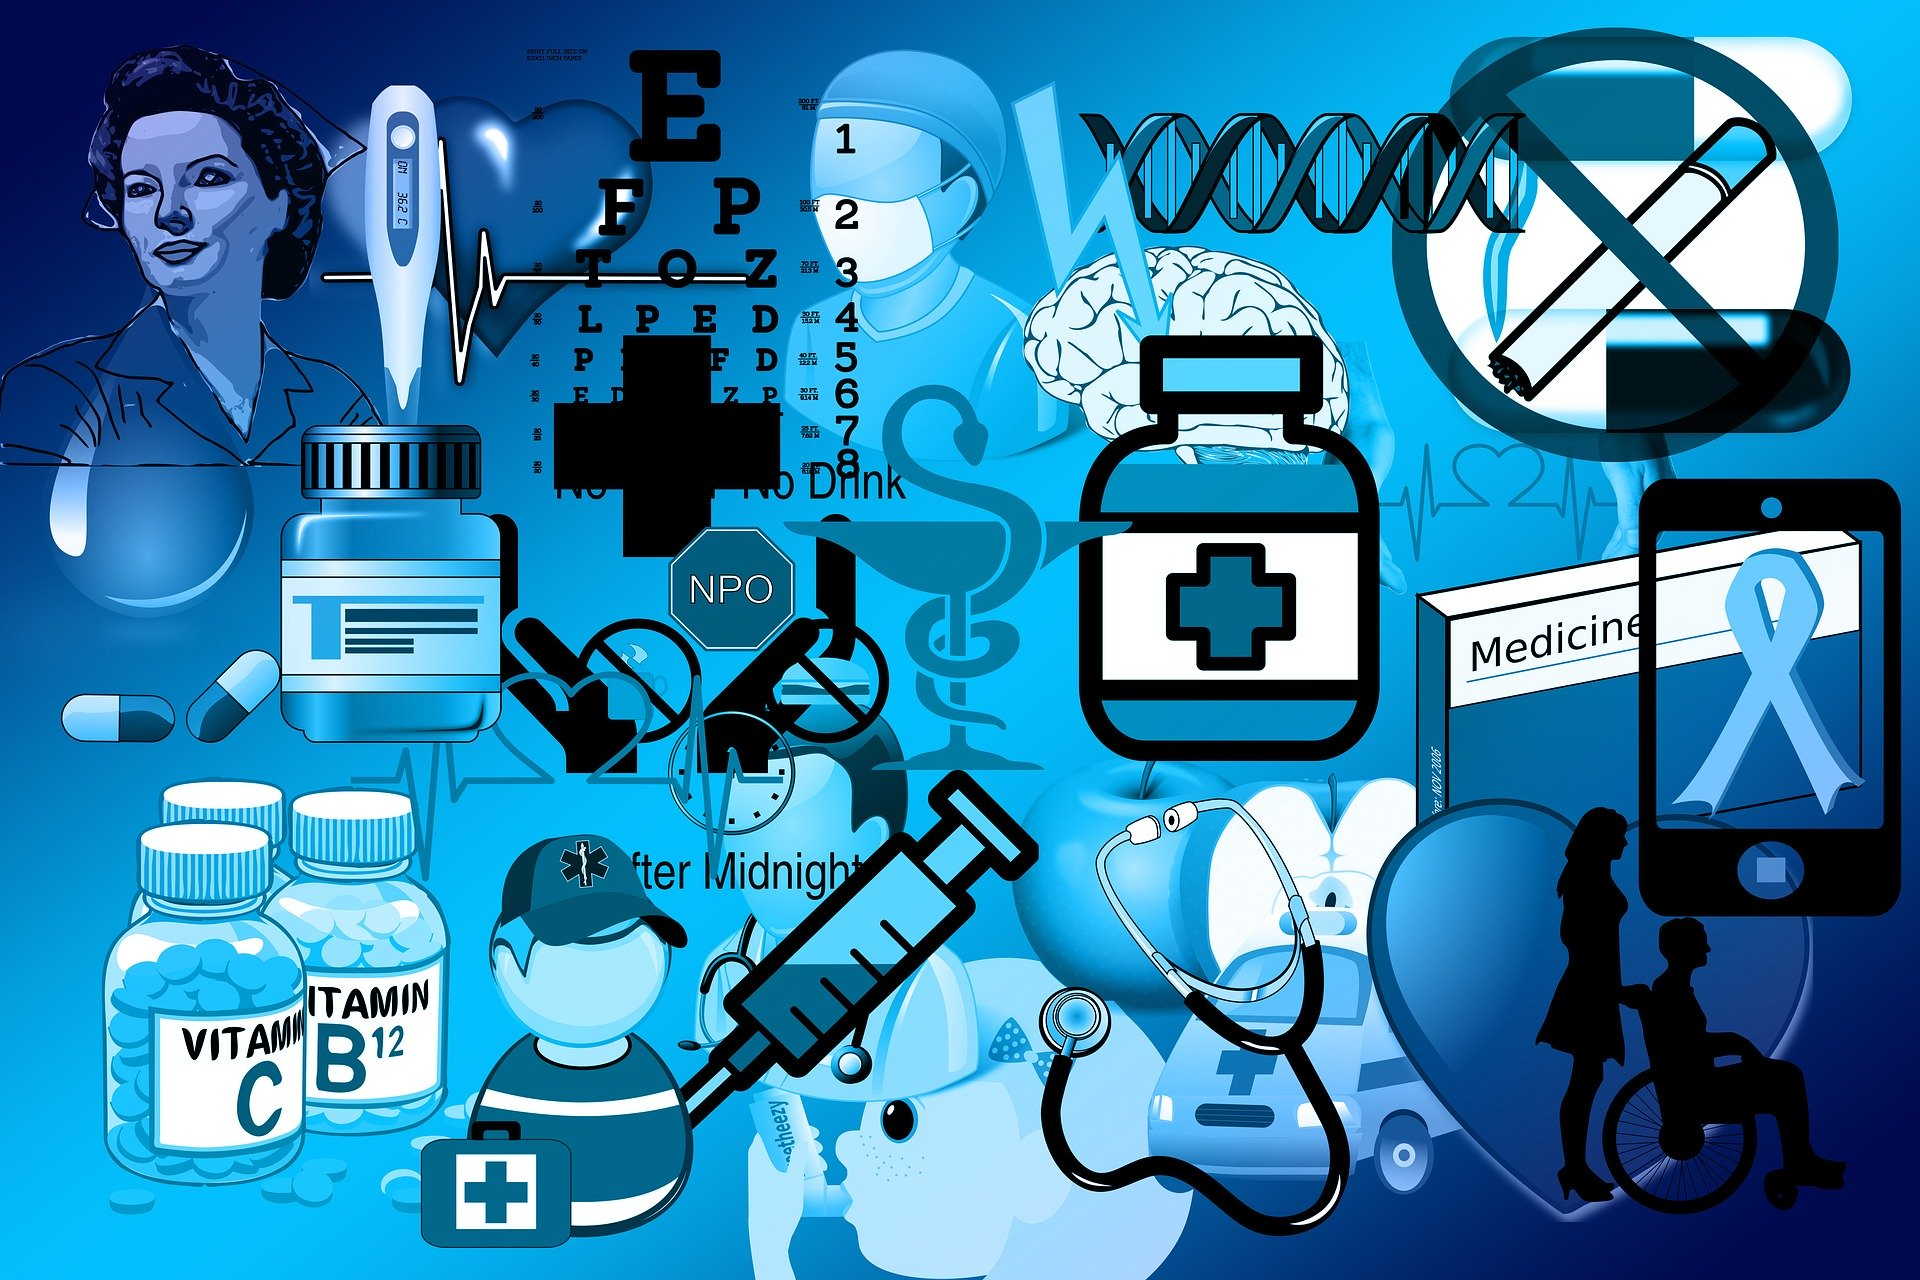 medicine - Medical Discoveries that Changed the World